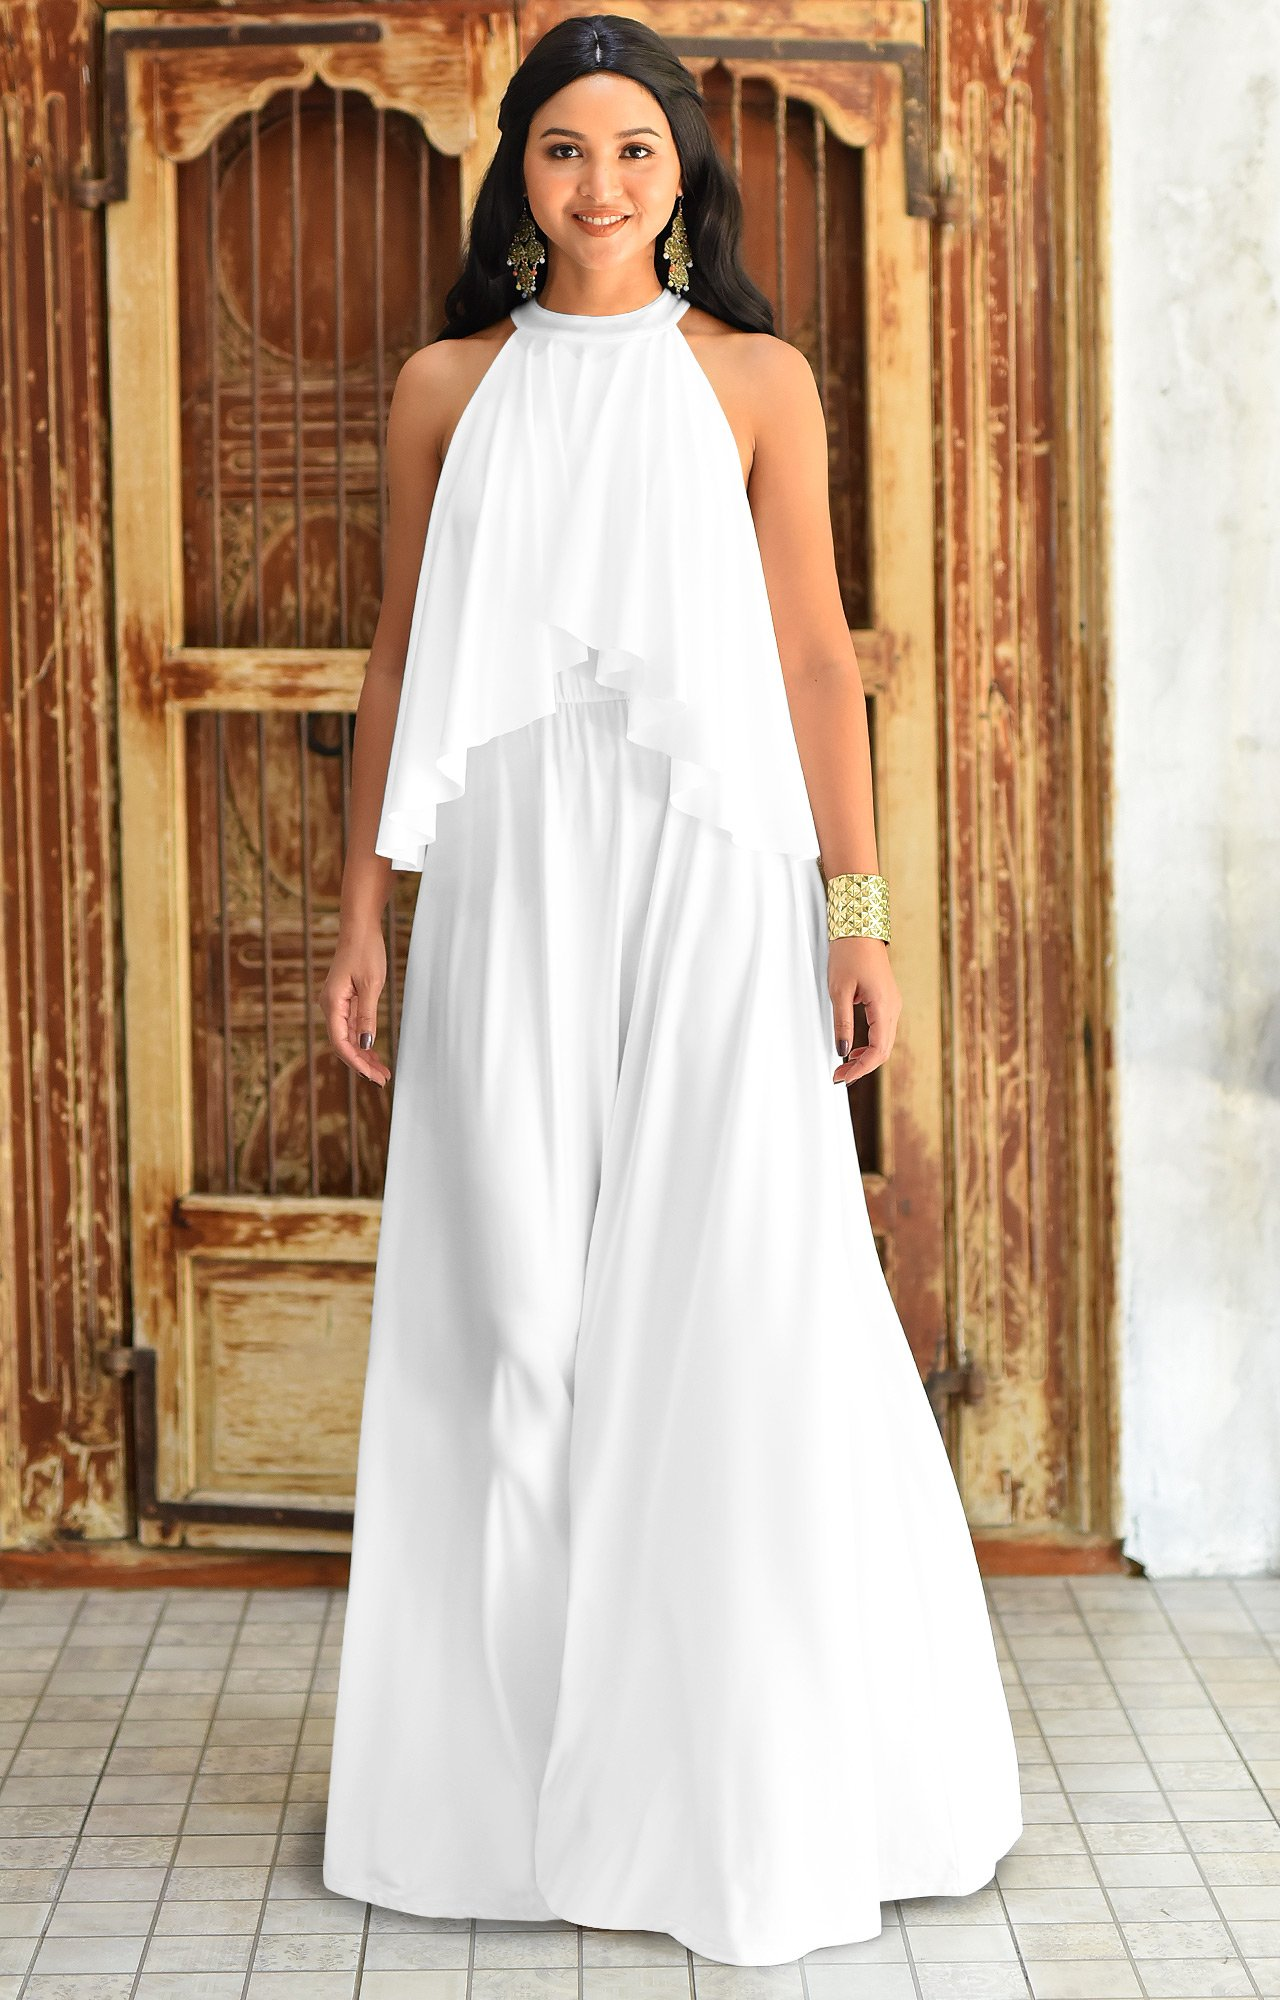 a8b6ce2ab8 ... Halter Neck Flowy Bridesmaid Bridal Cocktail Spring Summer Beach Wedding  Party Guest Floor-Length Gown Gowns Maxi Dress Dresses